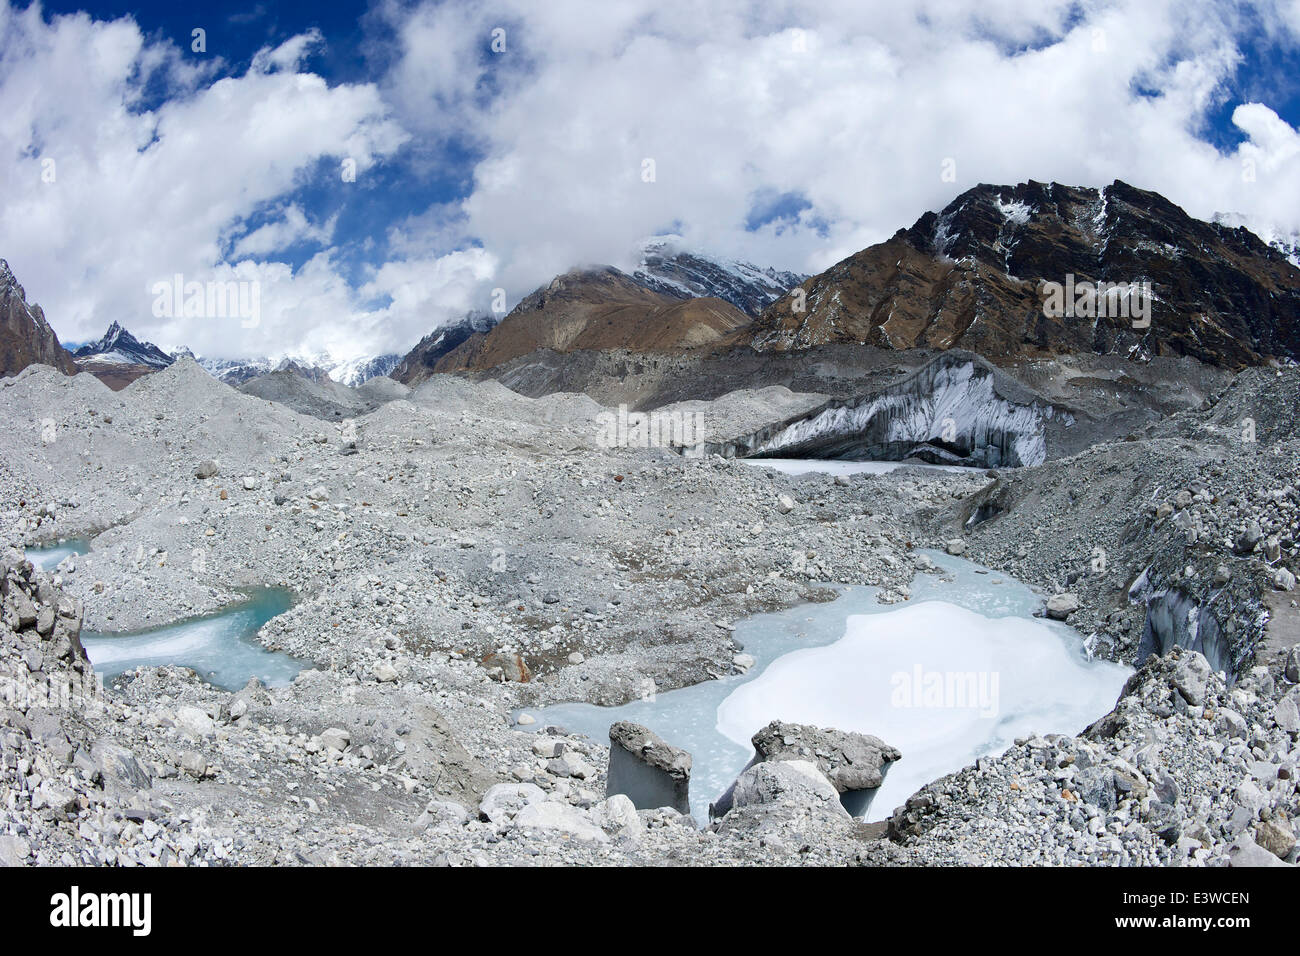 Moraine on the Ngozumpa Glacier between Gokyo and Dragnag, Solukhumbu region, Sagarmatha NP, Nepal, Asia - Stock Image